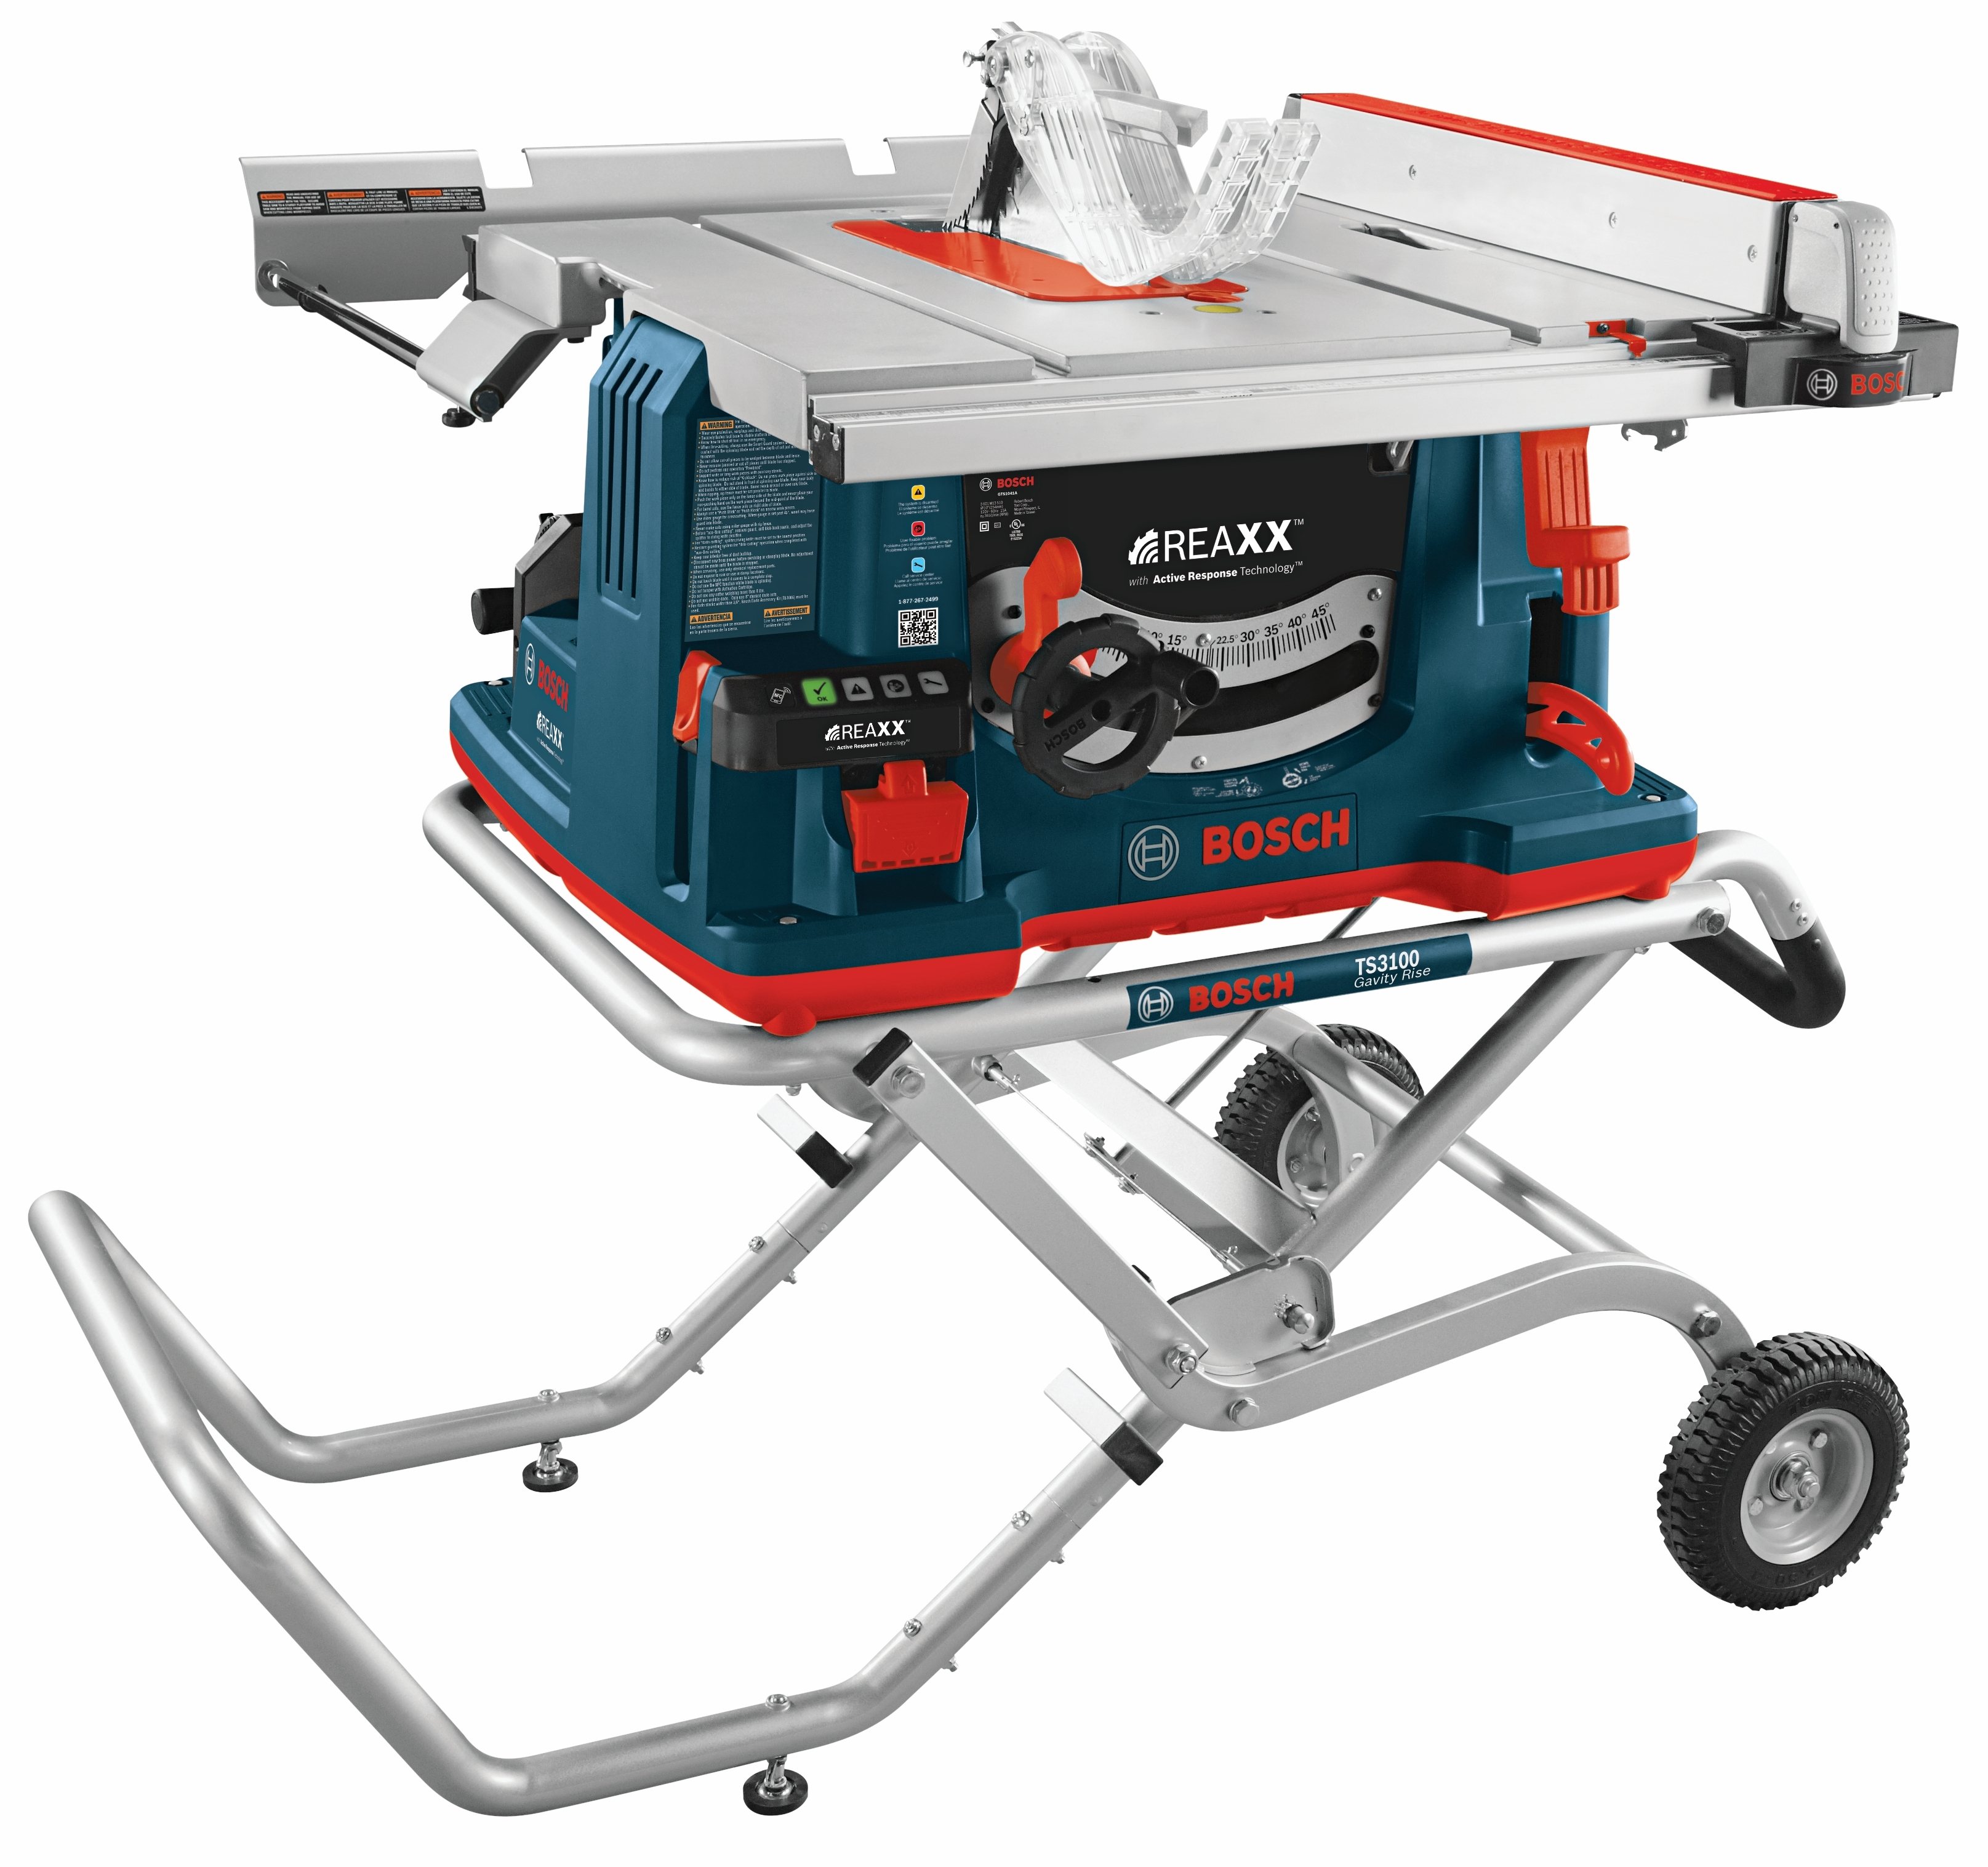 Bosch GTS1041A REAXX™ Jobsite Table Saw Takes User Safety to the